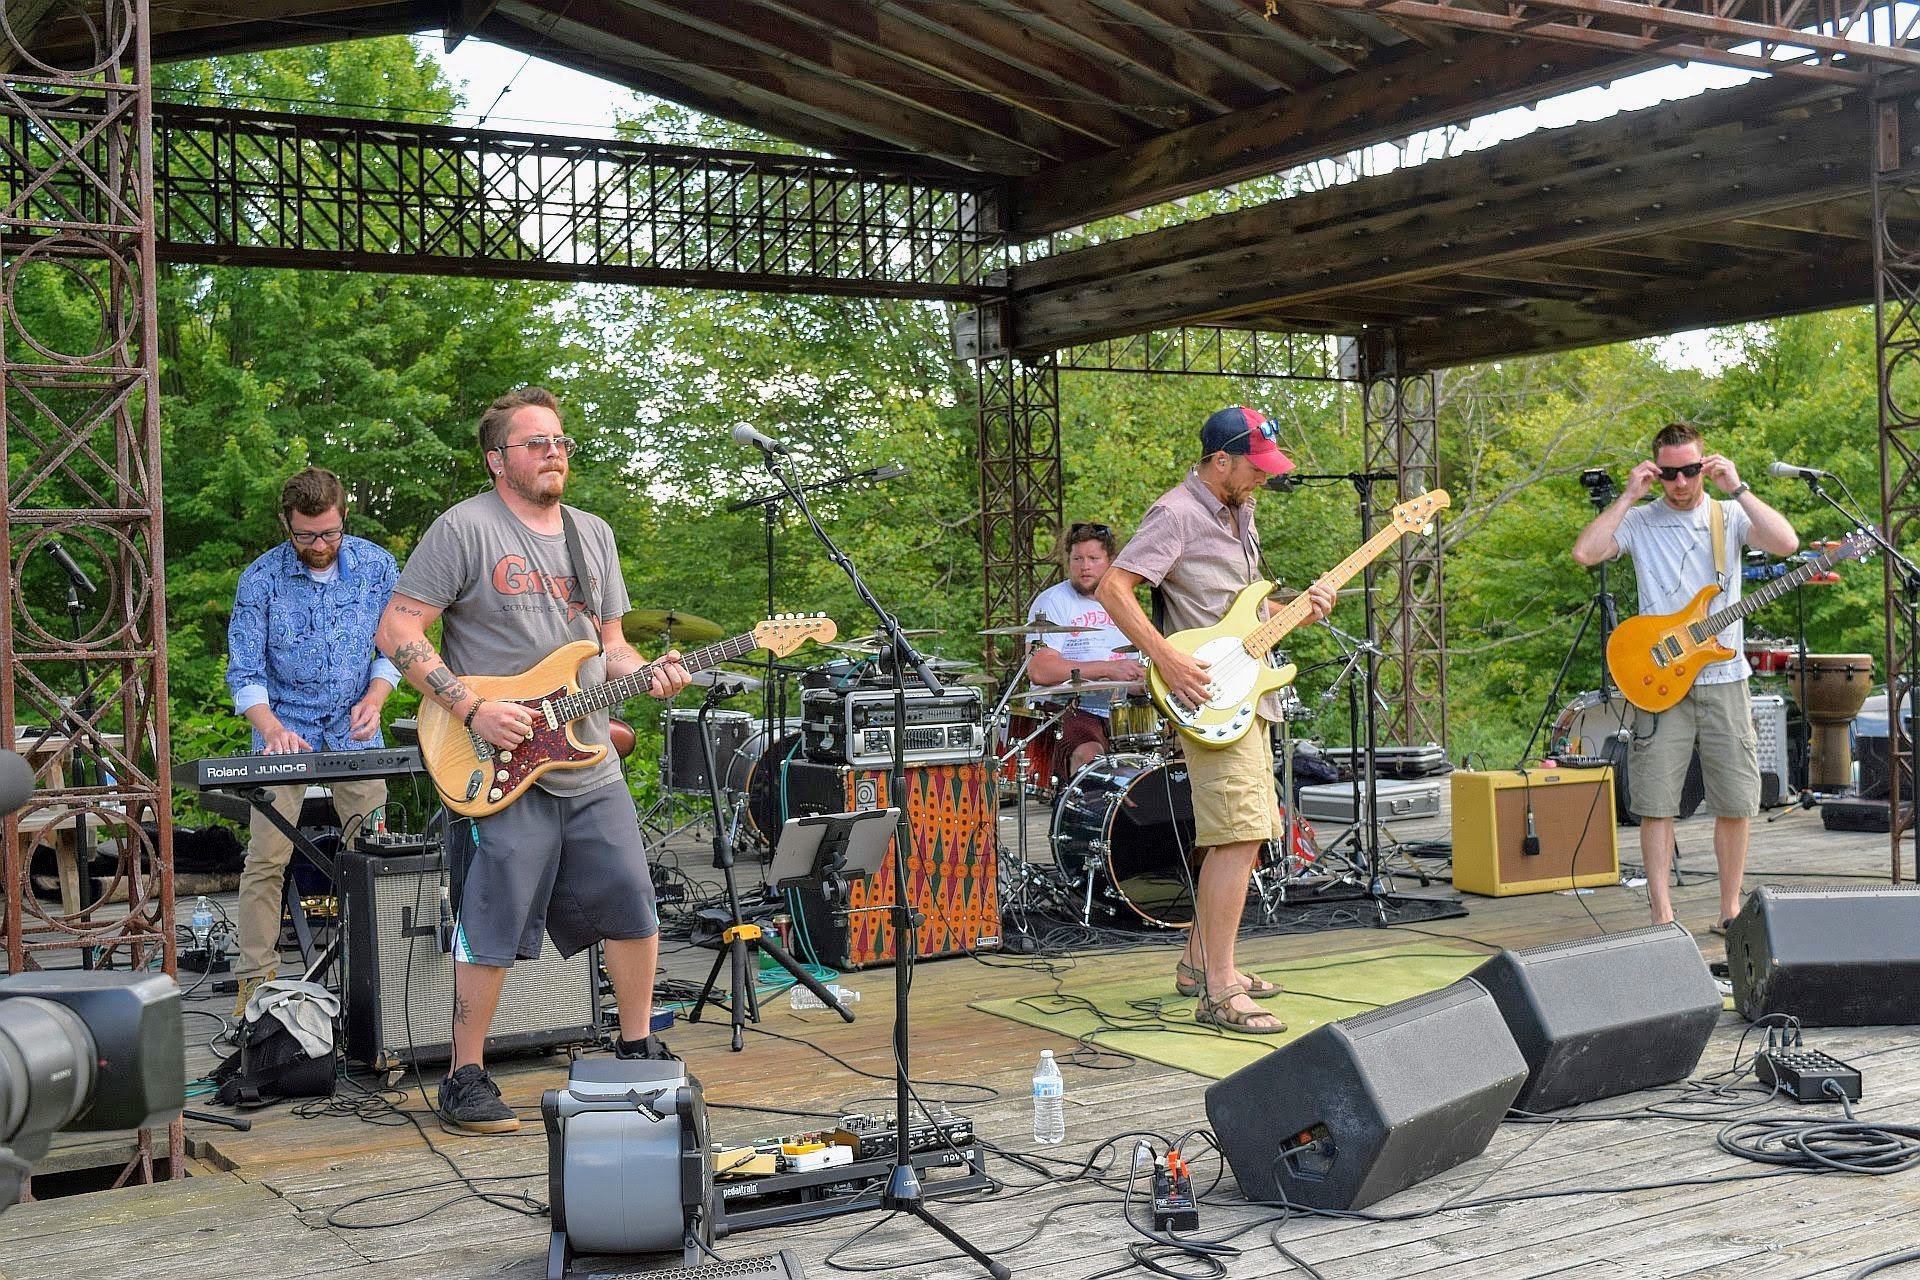 Photos from 7th Annual Griffis Sculpture Park Summer Festival